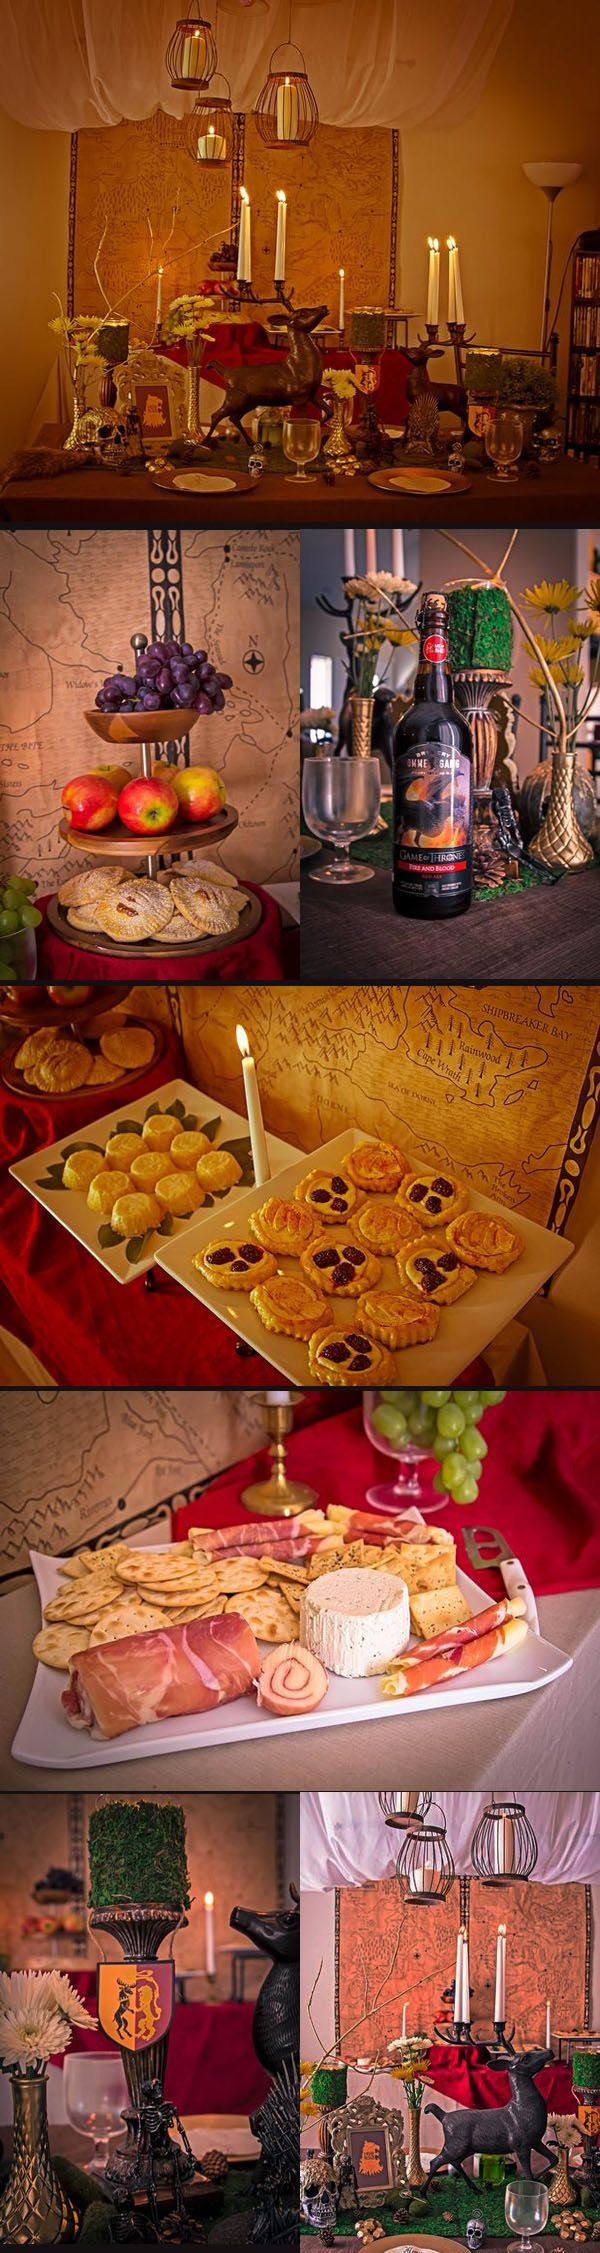 A Game of Thrones Party ideas for the buffet table. Notice the map used as a backdrop. Actually, the food selections are straightforward: cheese tray, variety of fruit, roast chicken, potatoes, and (Cheese Table Buffet)